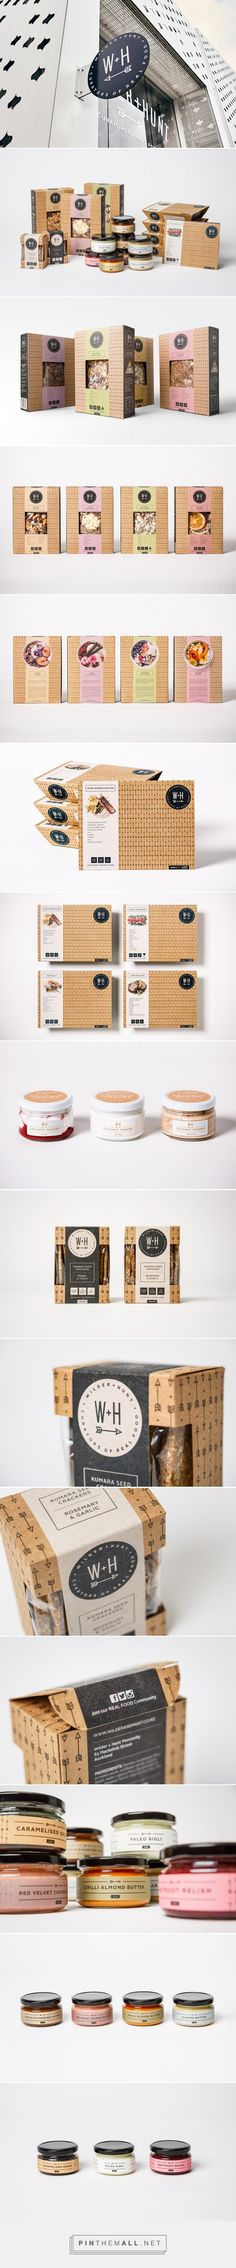 Wilder + Hunt Food Packaging by Fuman | Fivestar Branding Agency – Design and Branding Agency & Curated Inspiration Gallery